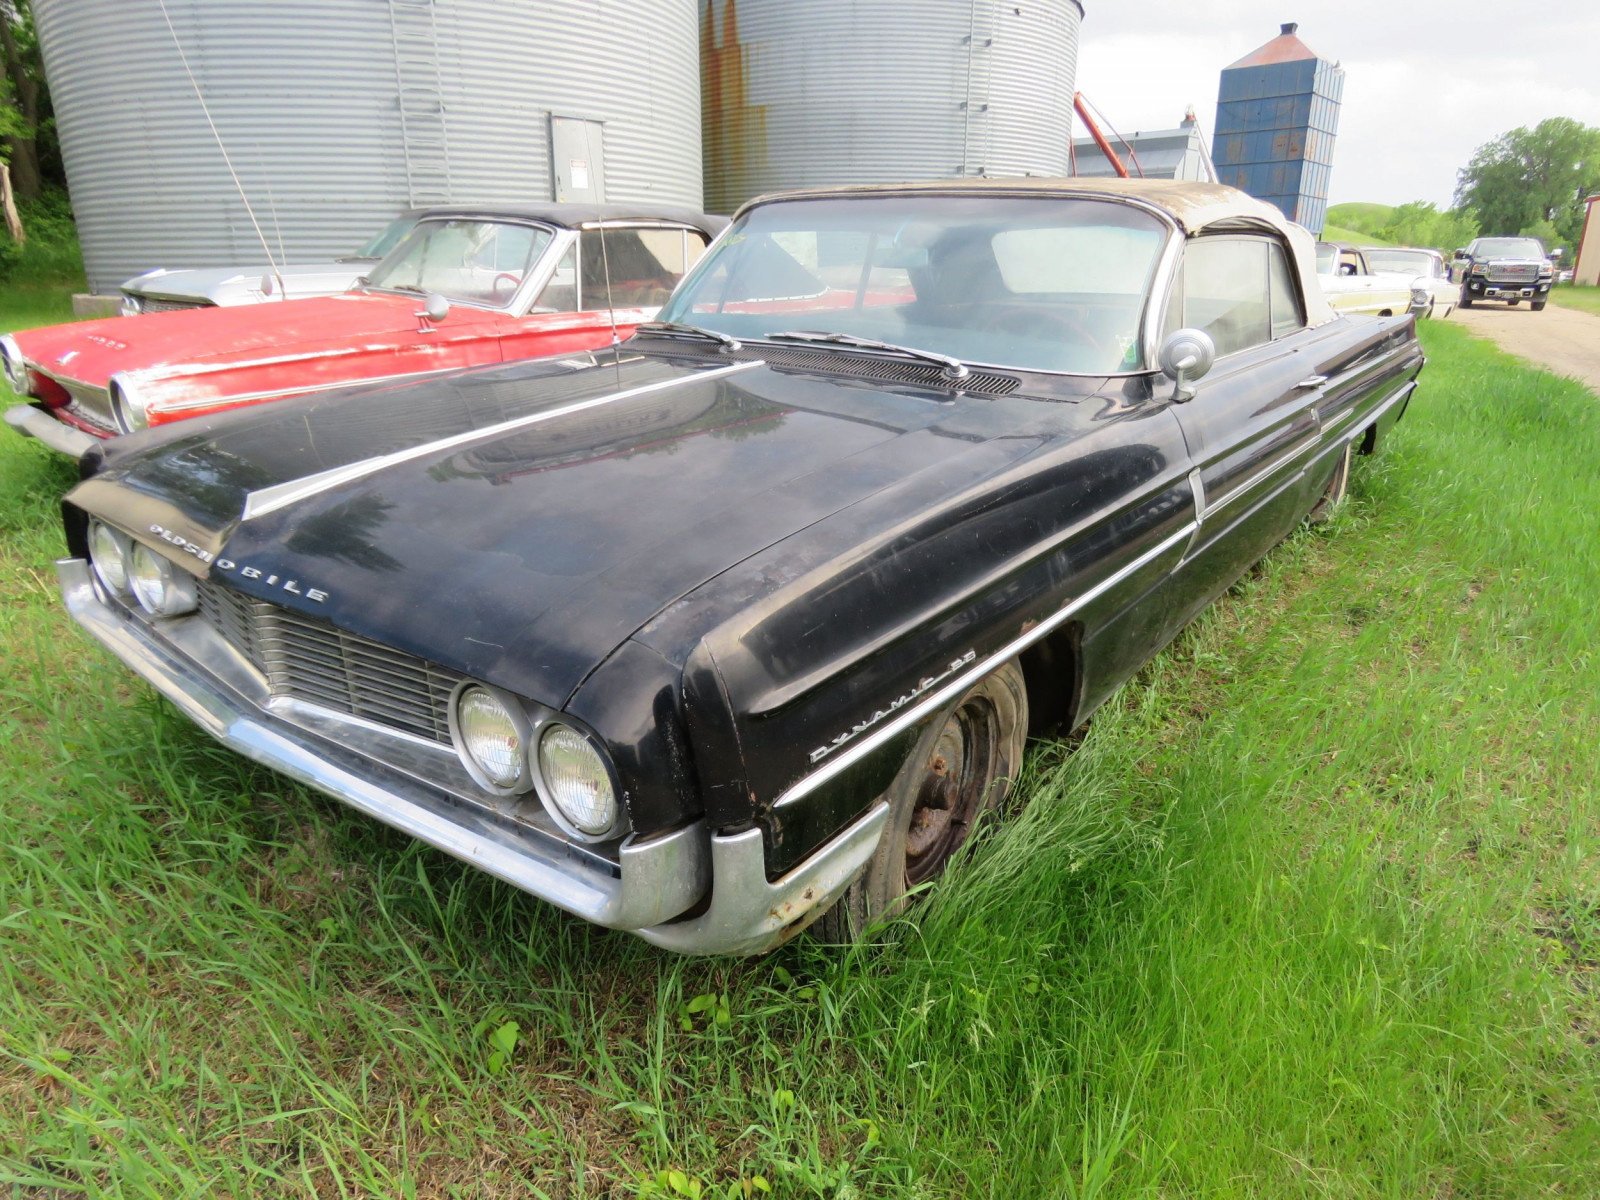 1962 Oldsmobile Dynamic 88 Convertible 622M23255 - Image 3